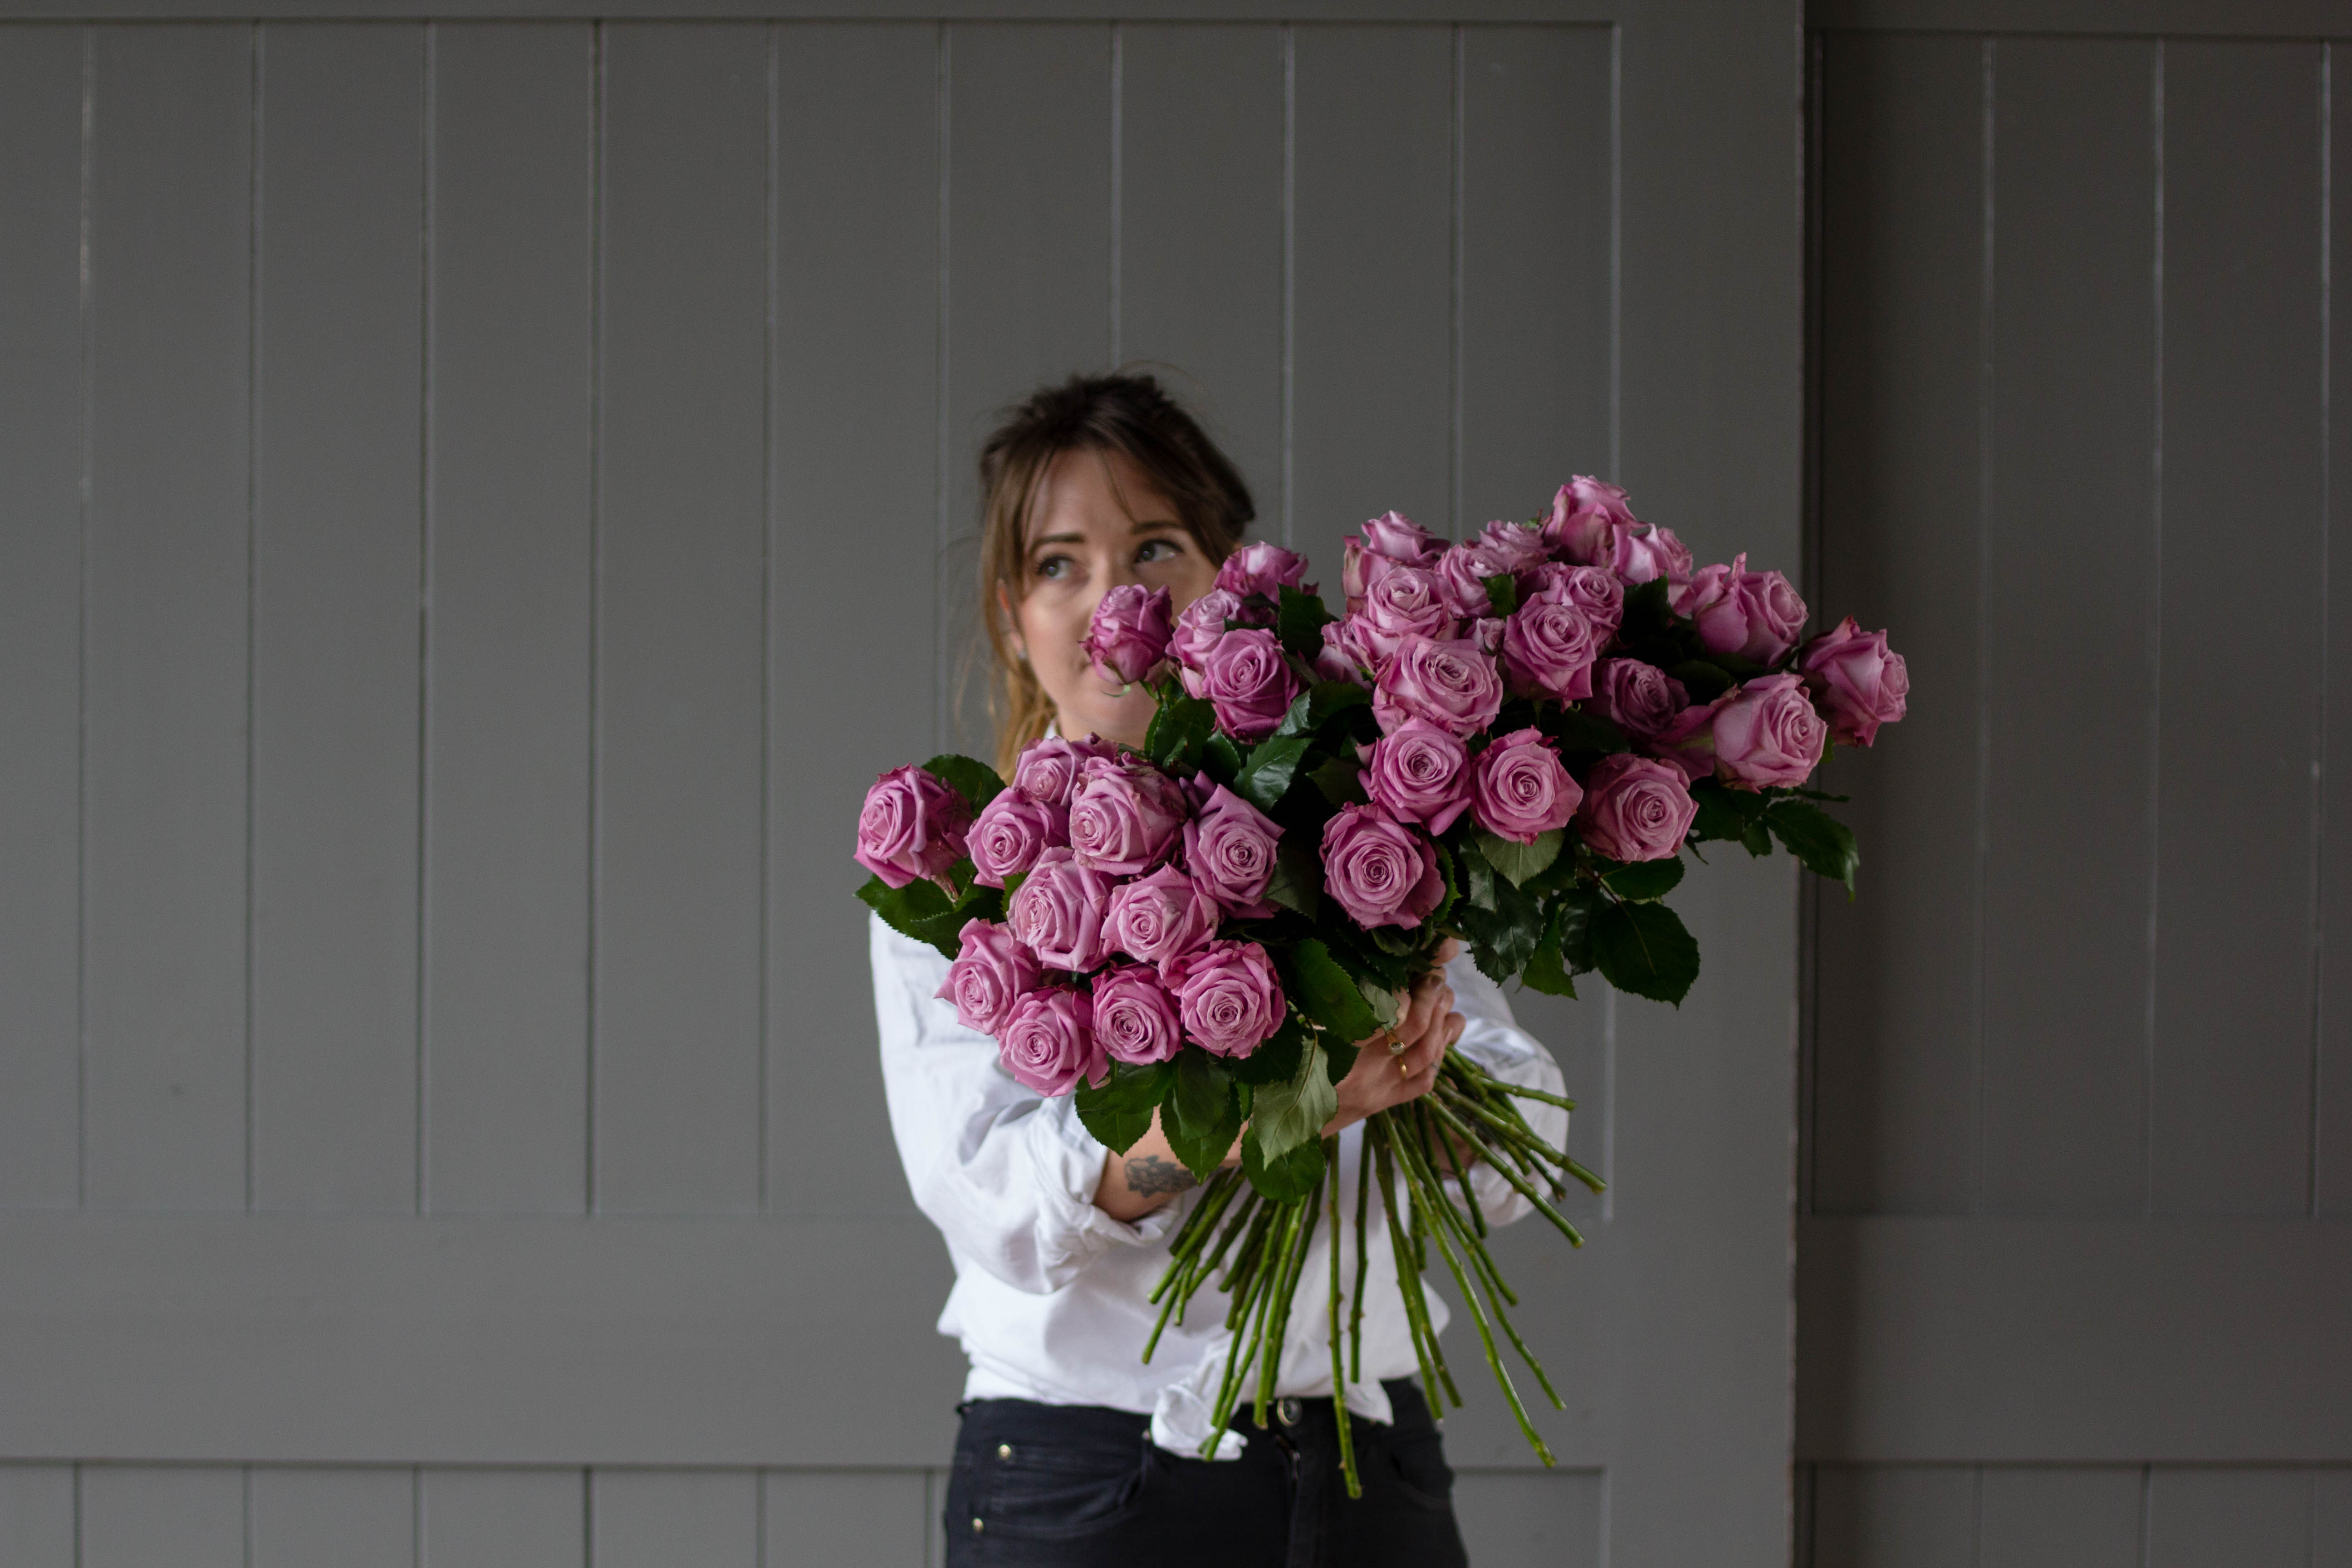 dd7b4a9690881 Our team has grown considerably too. We now create beautiful bouquets for  our lovely customers in our two shops – Ponsonby Central and St Kevin s  Arcade.